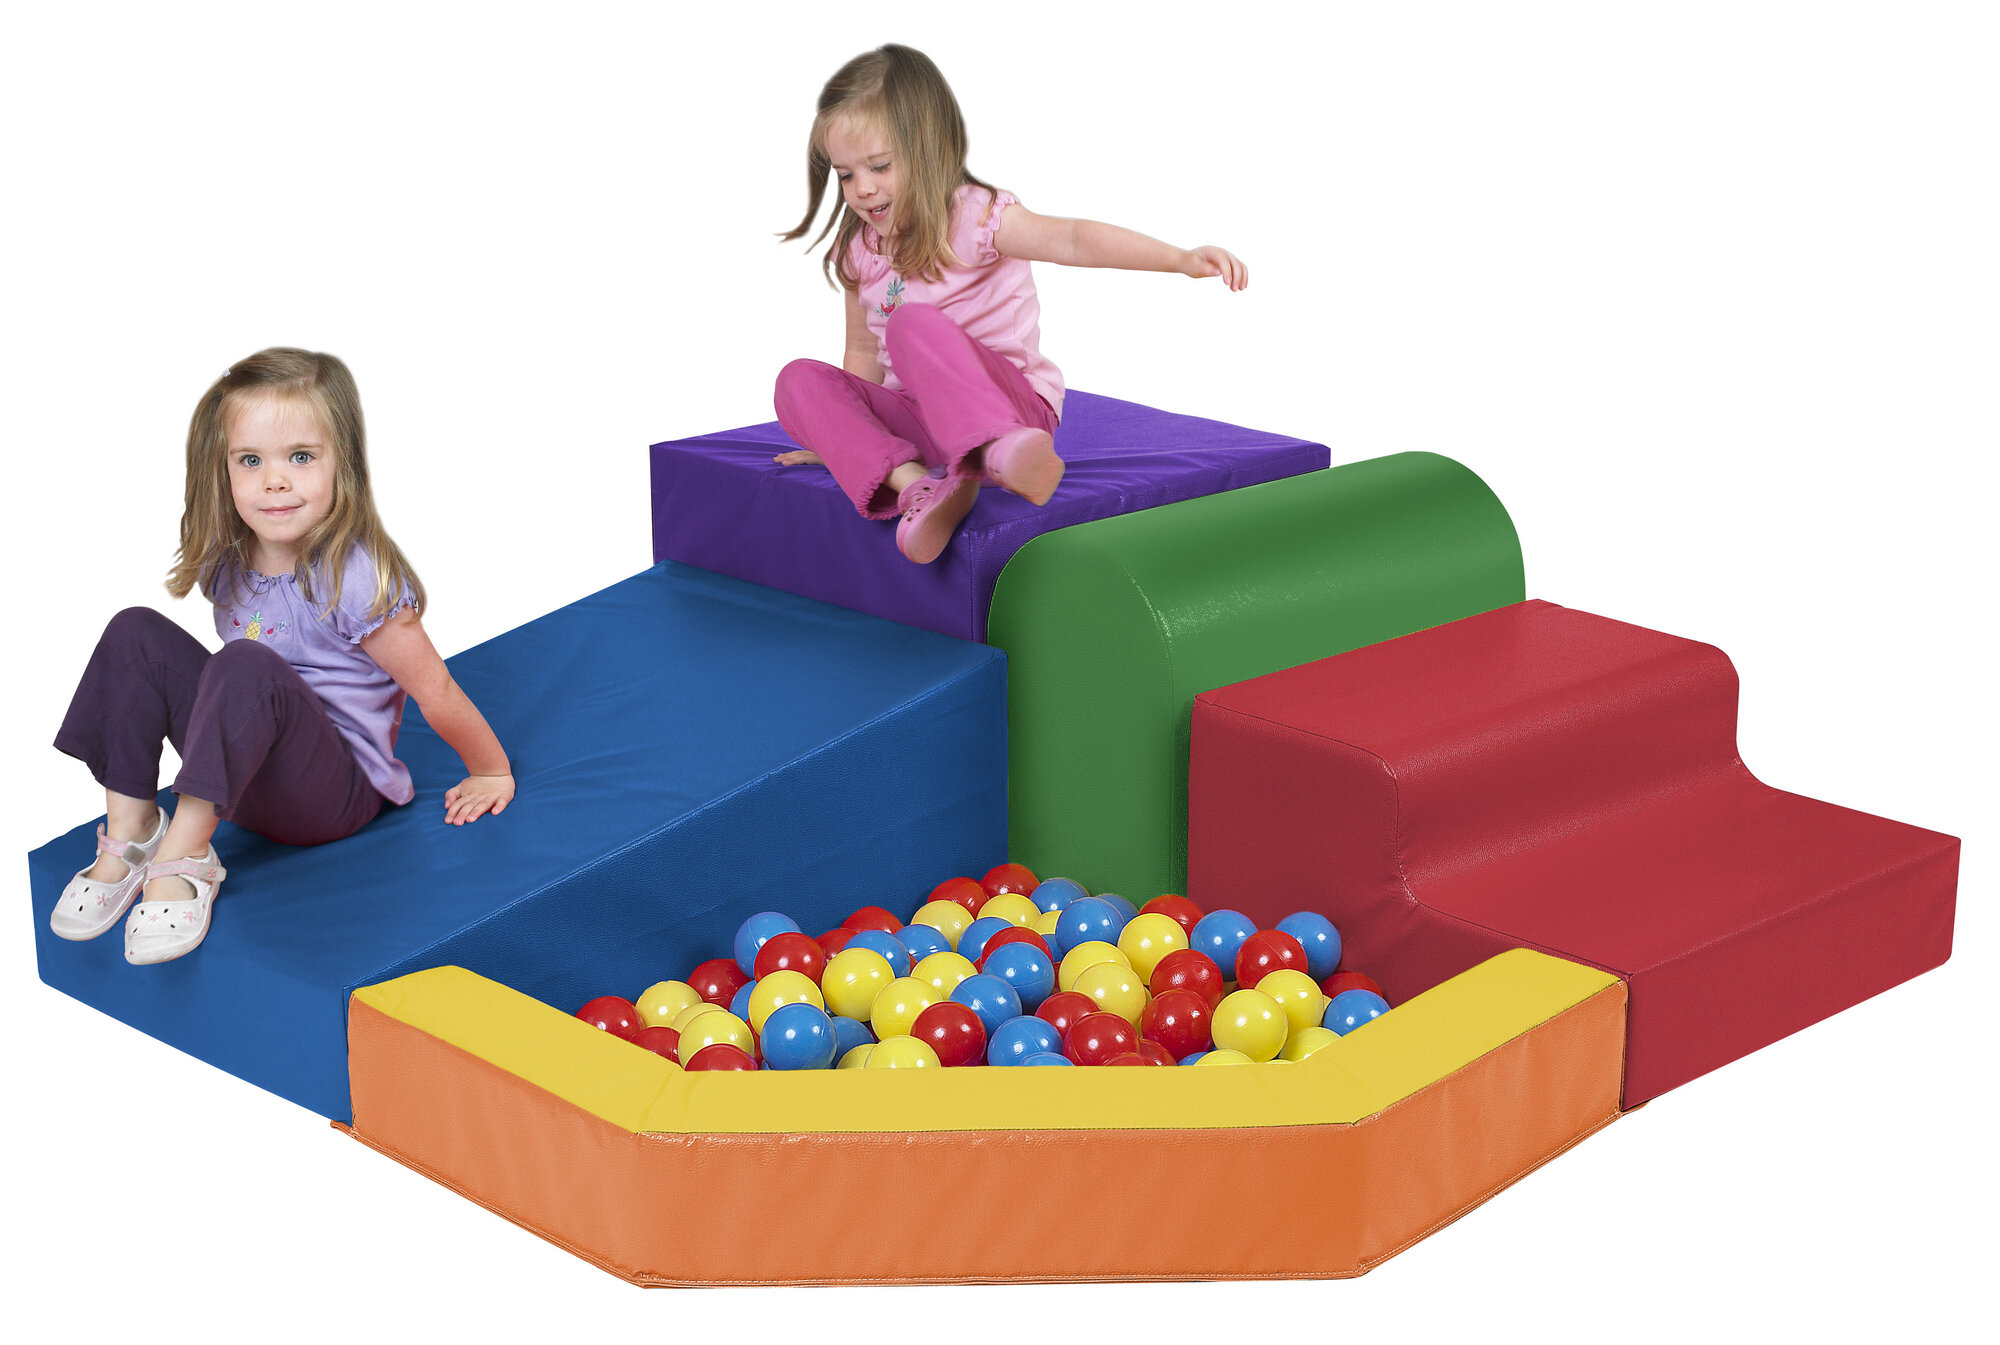 Daycare Furniture with Ball Pit